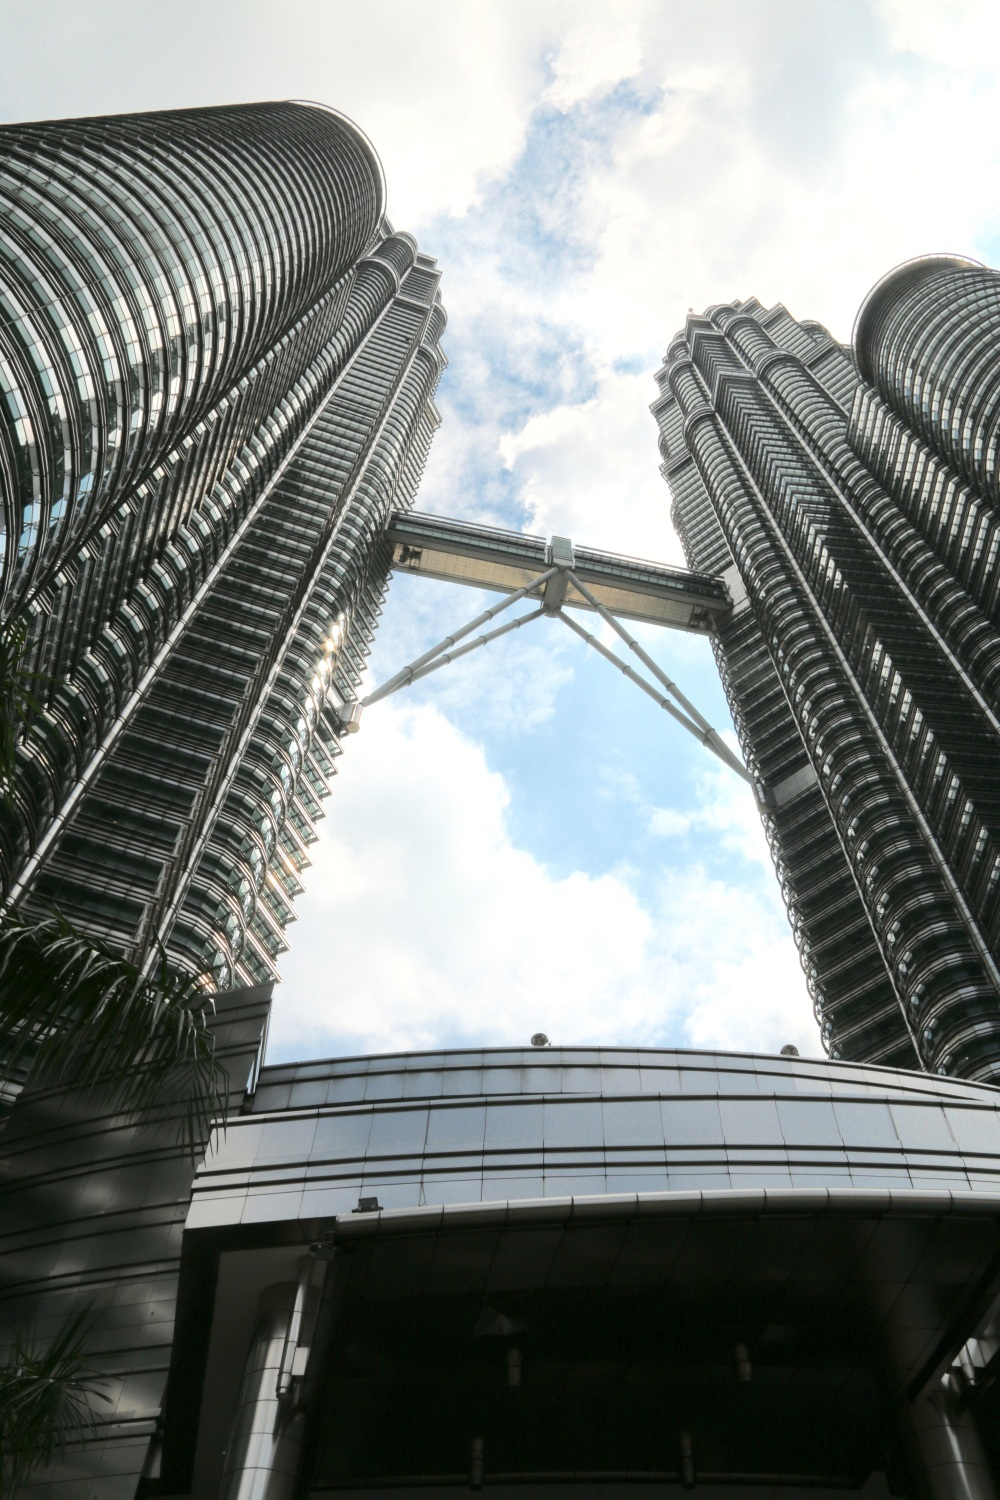 The iconic Petronas Twin Towers